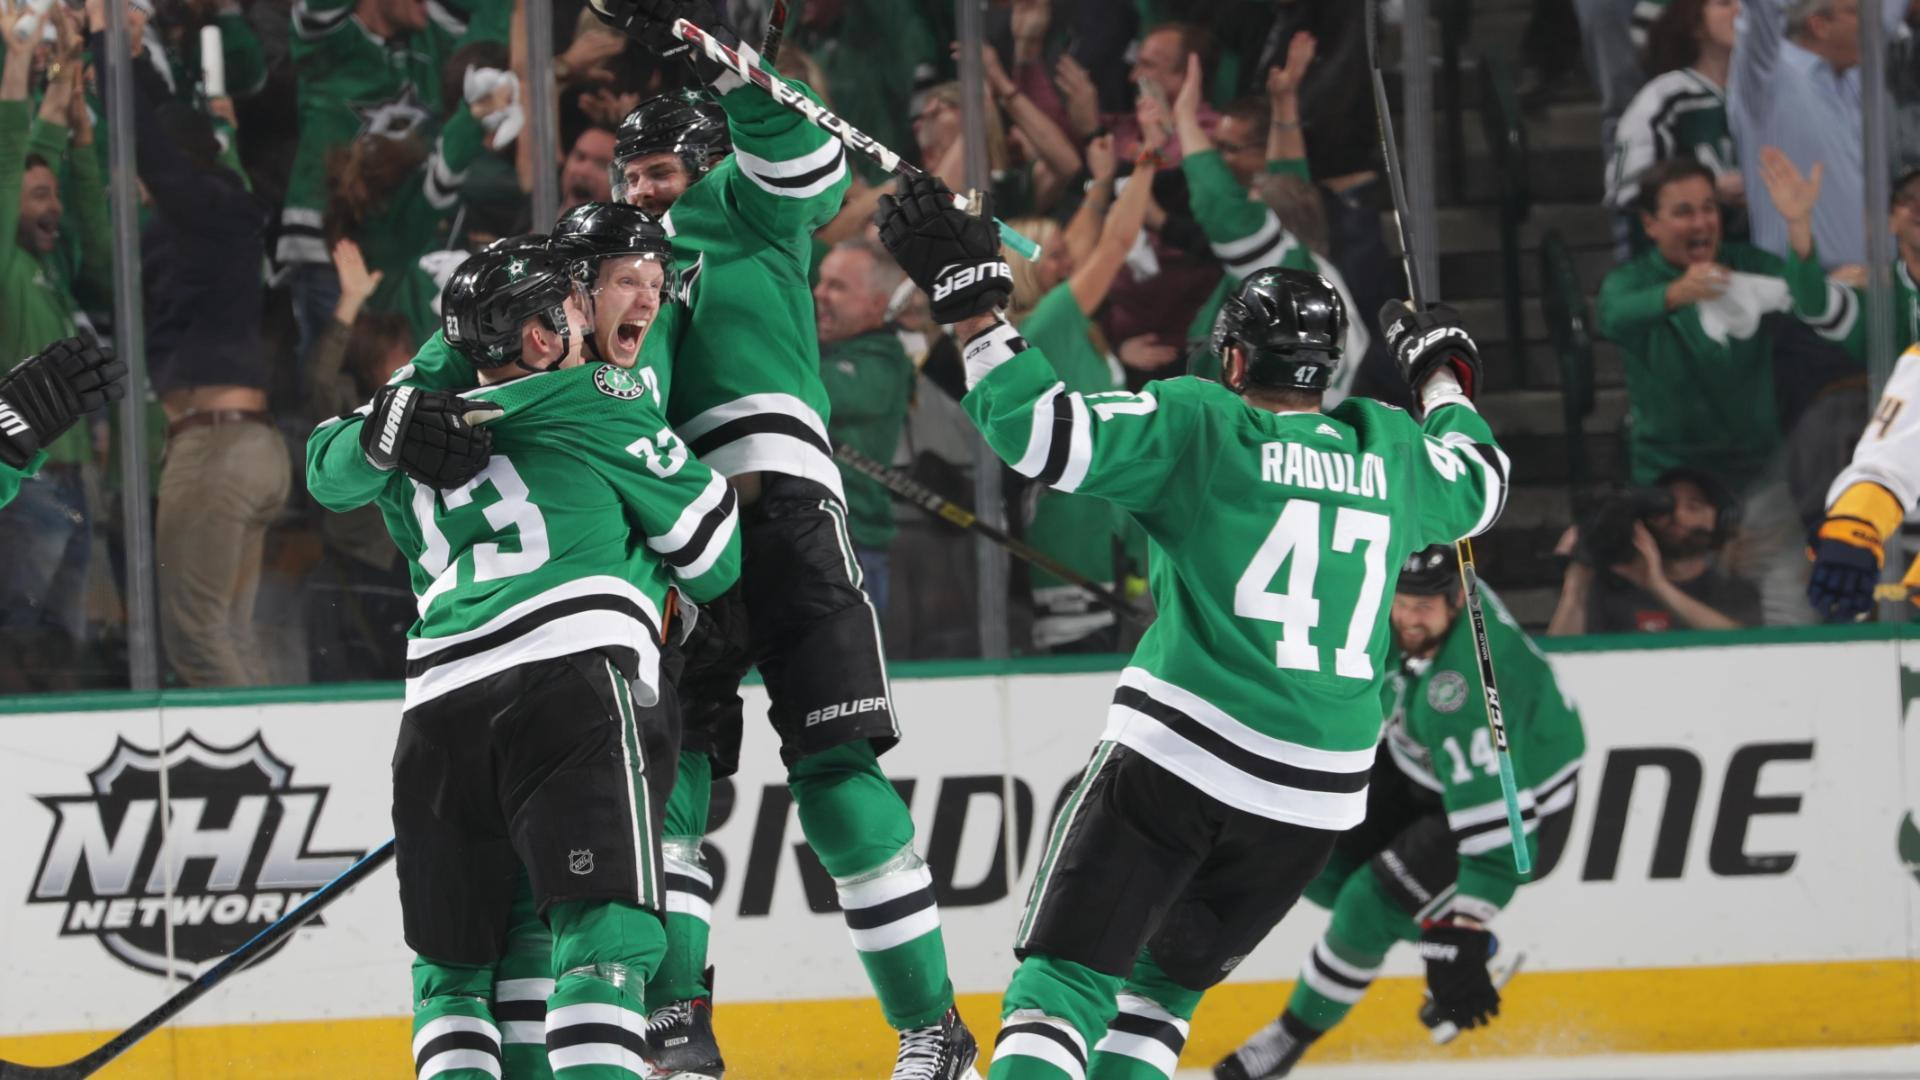 Klingberg's OT goal advances Stars to next round